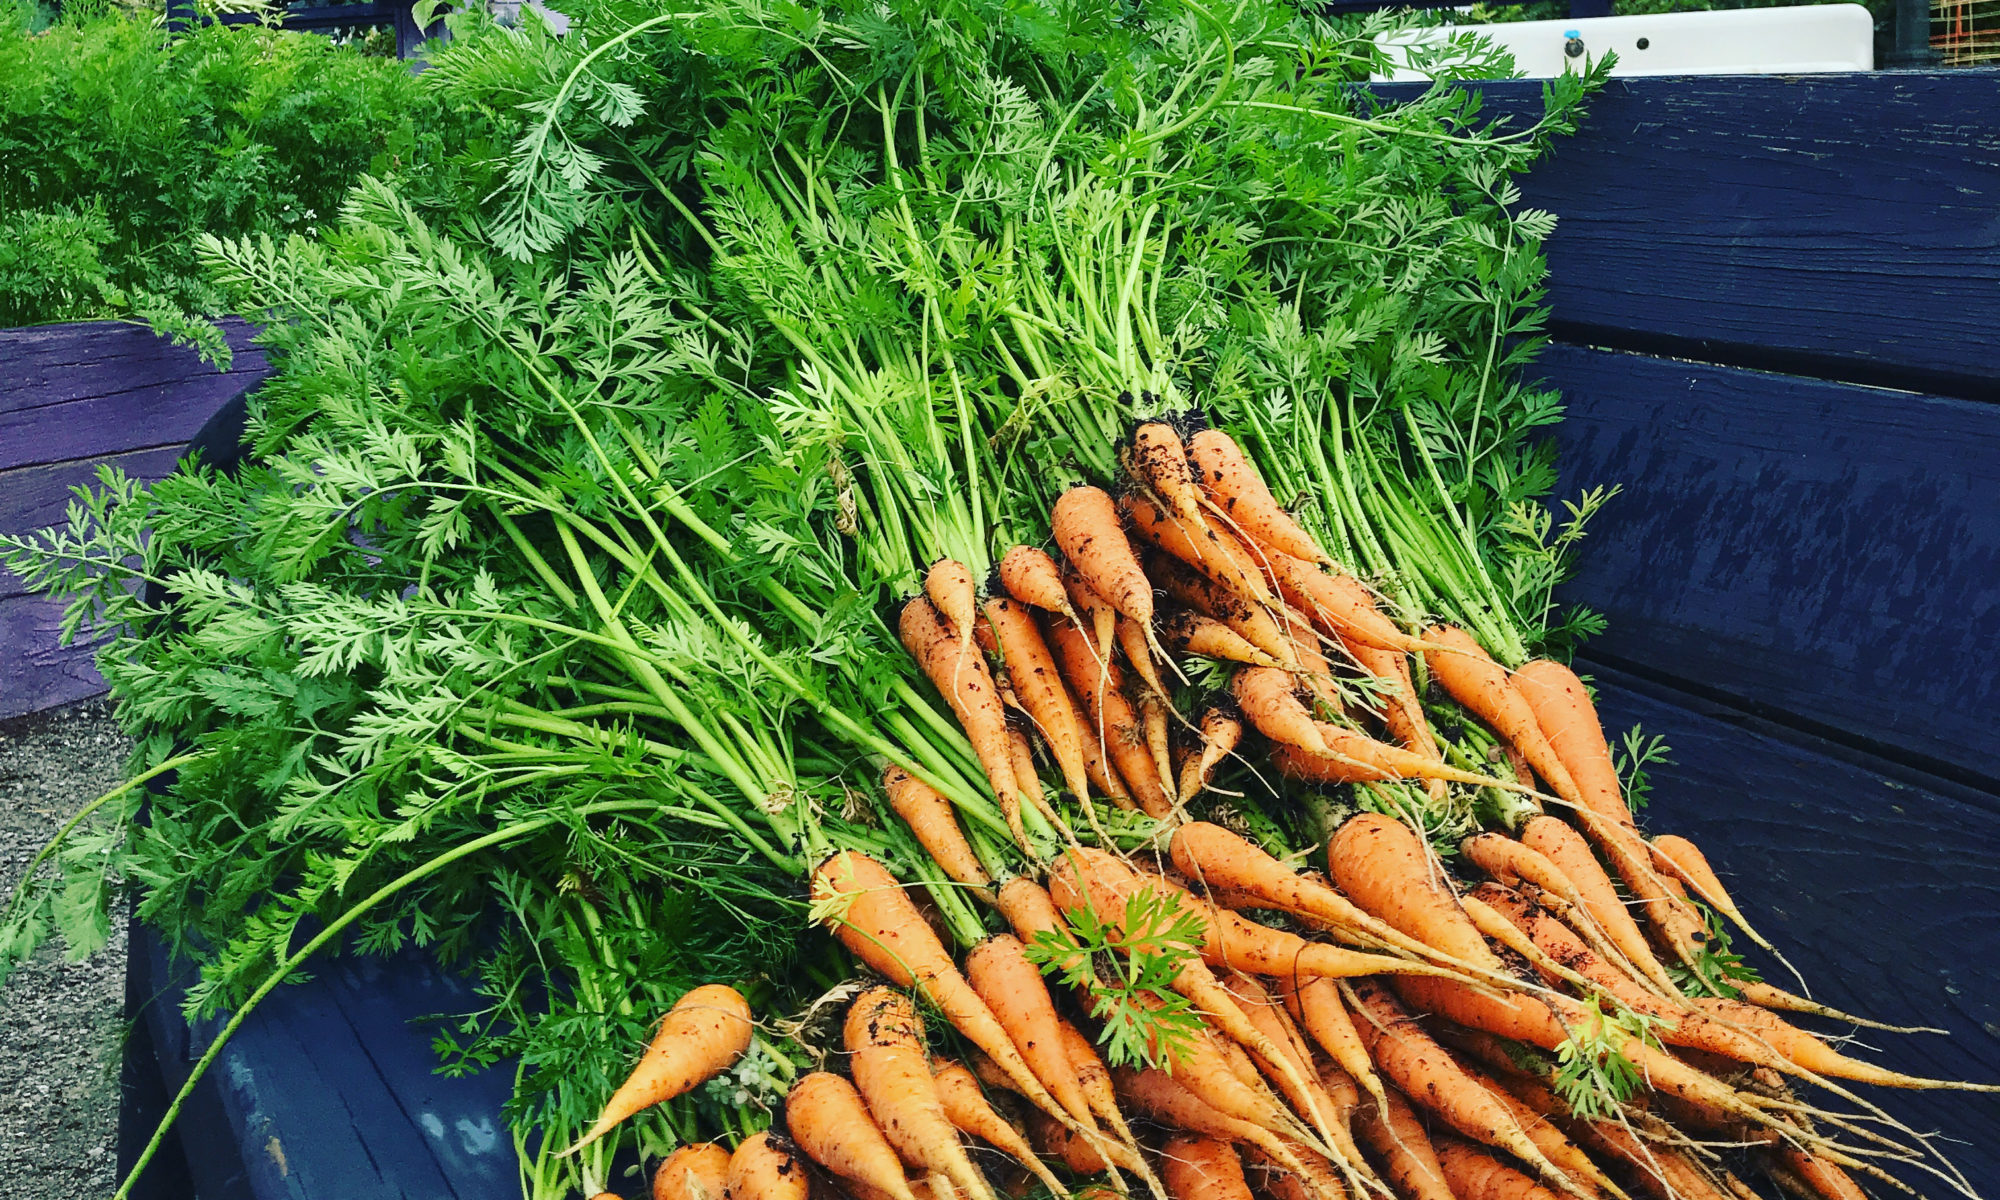 Picture of carrots in a truckbed